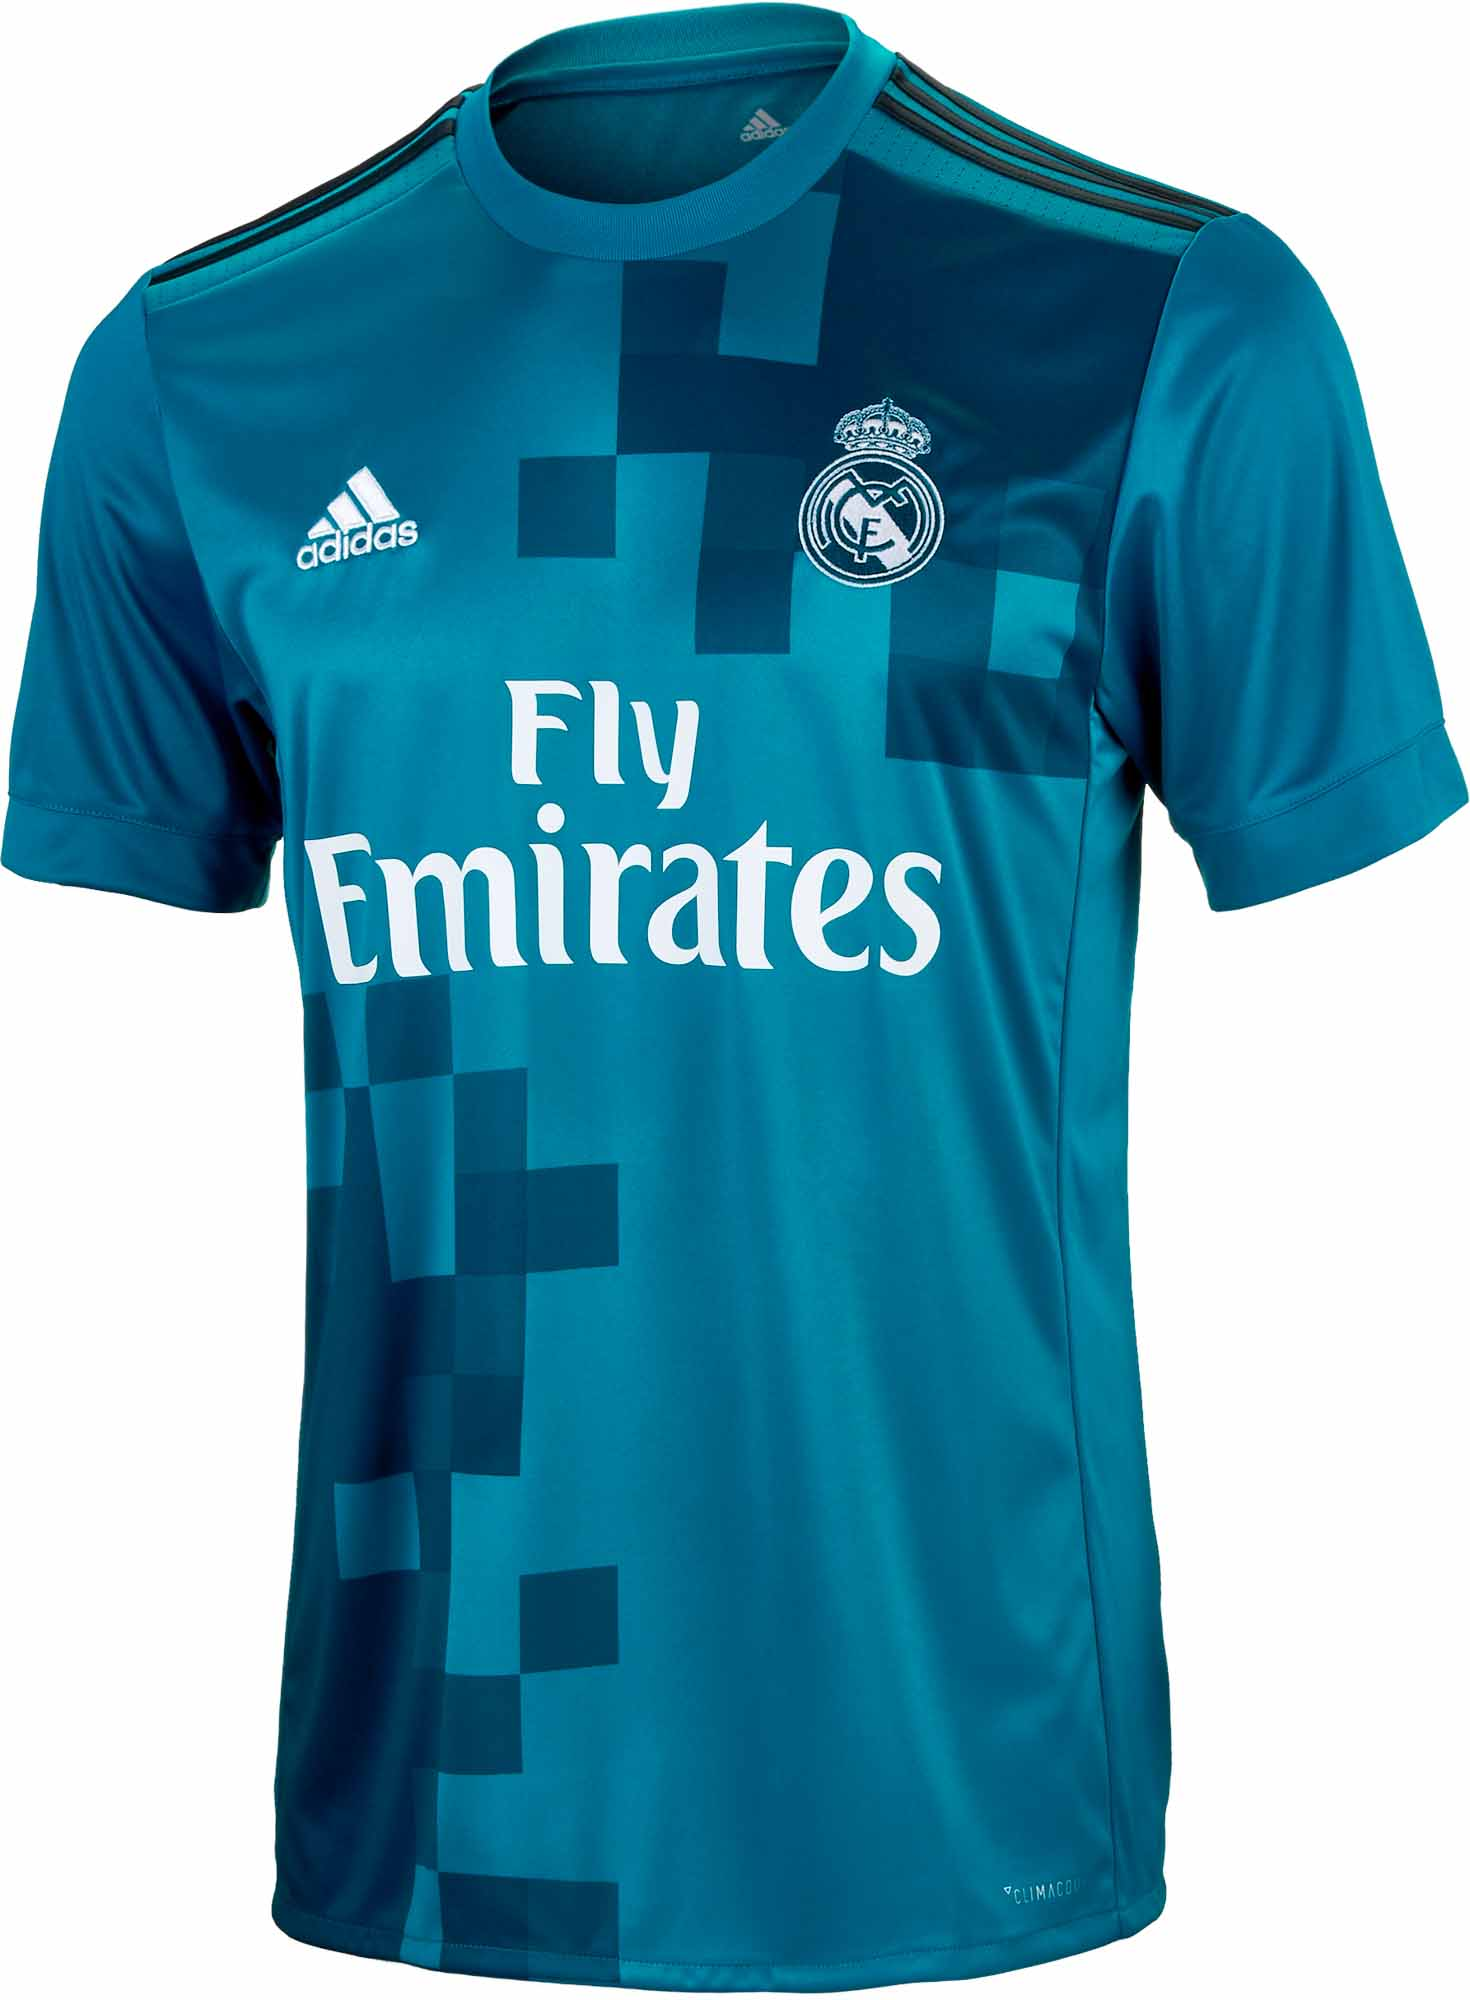 2017 18 adidas Kids Real Madrid 3rd Jersey - SoccerPro 0df132401